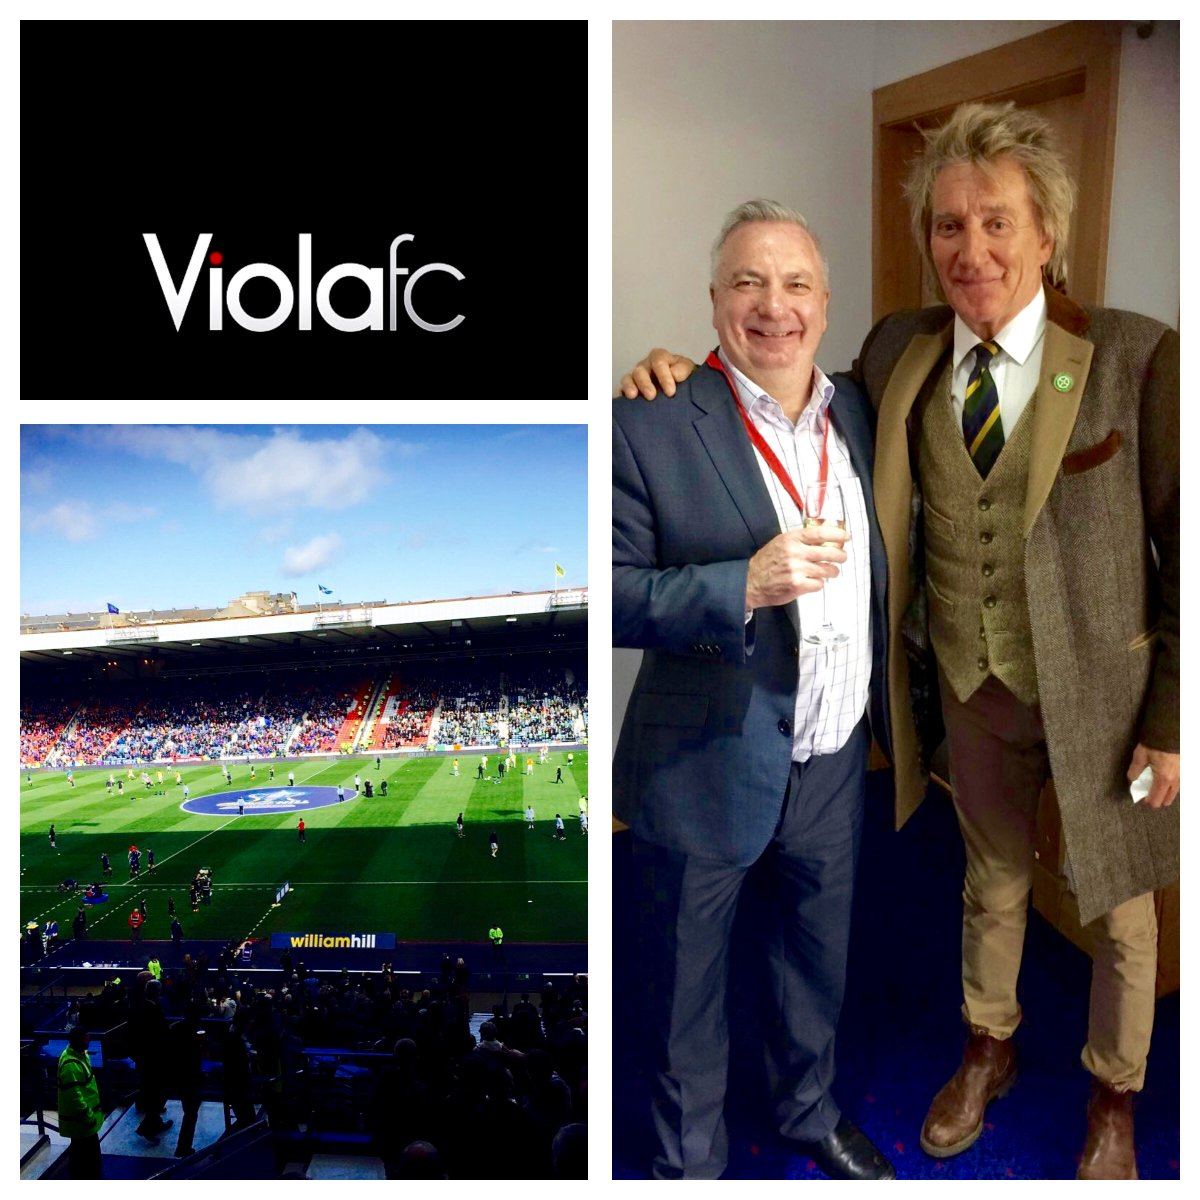 Fantastic day at Hampden watching the Old Firm Derby, amazing fixture, @rodstewart popped bye to say hello #ViolaFC https://t.co/9hkFO3dYBo